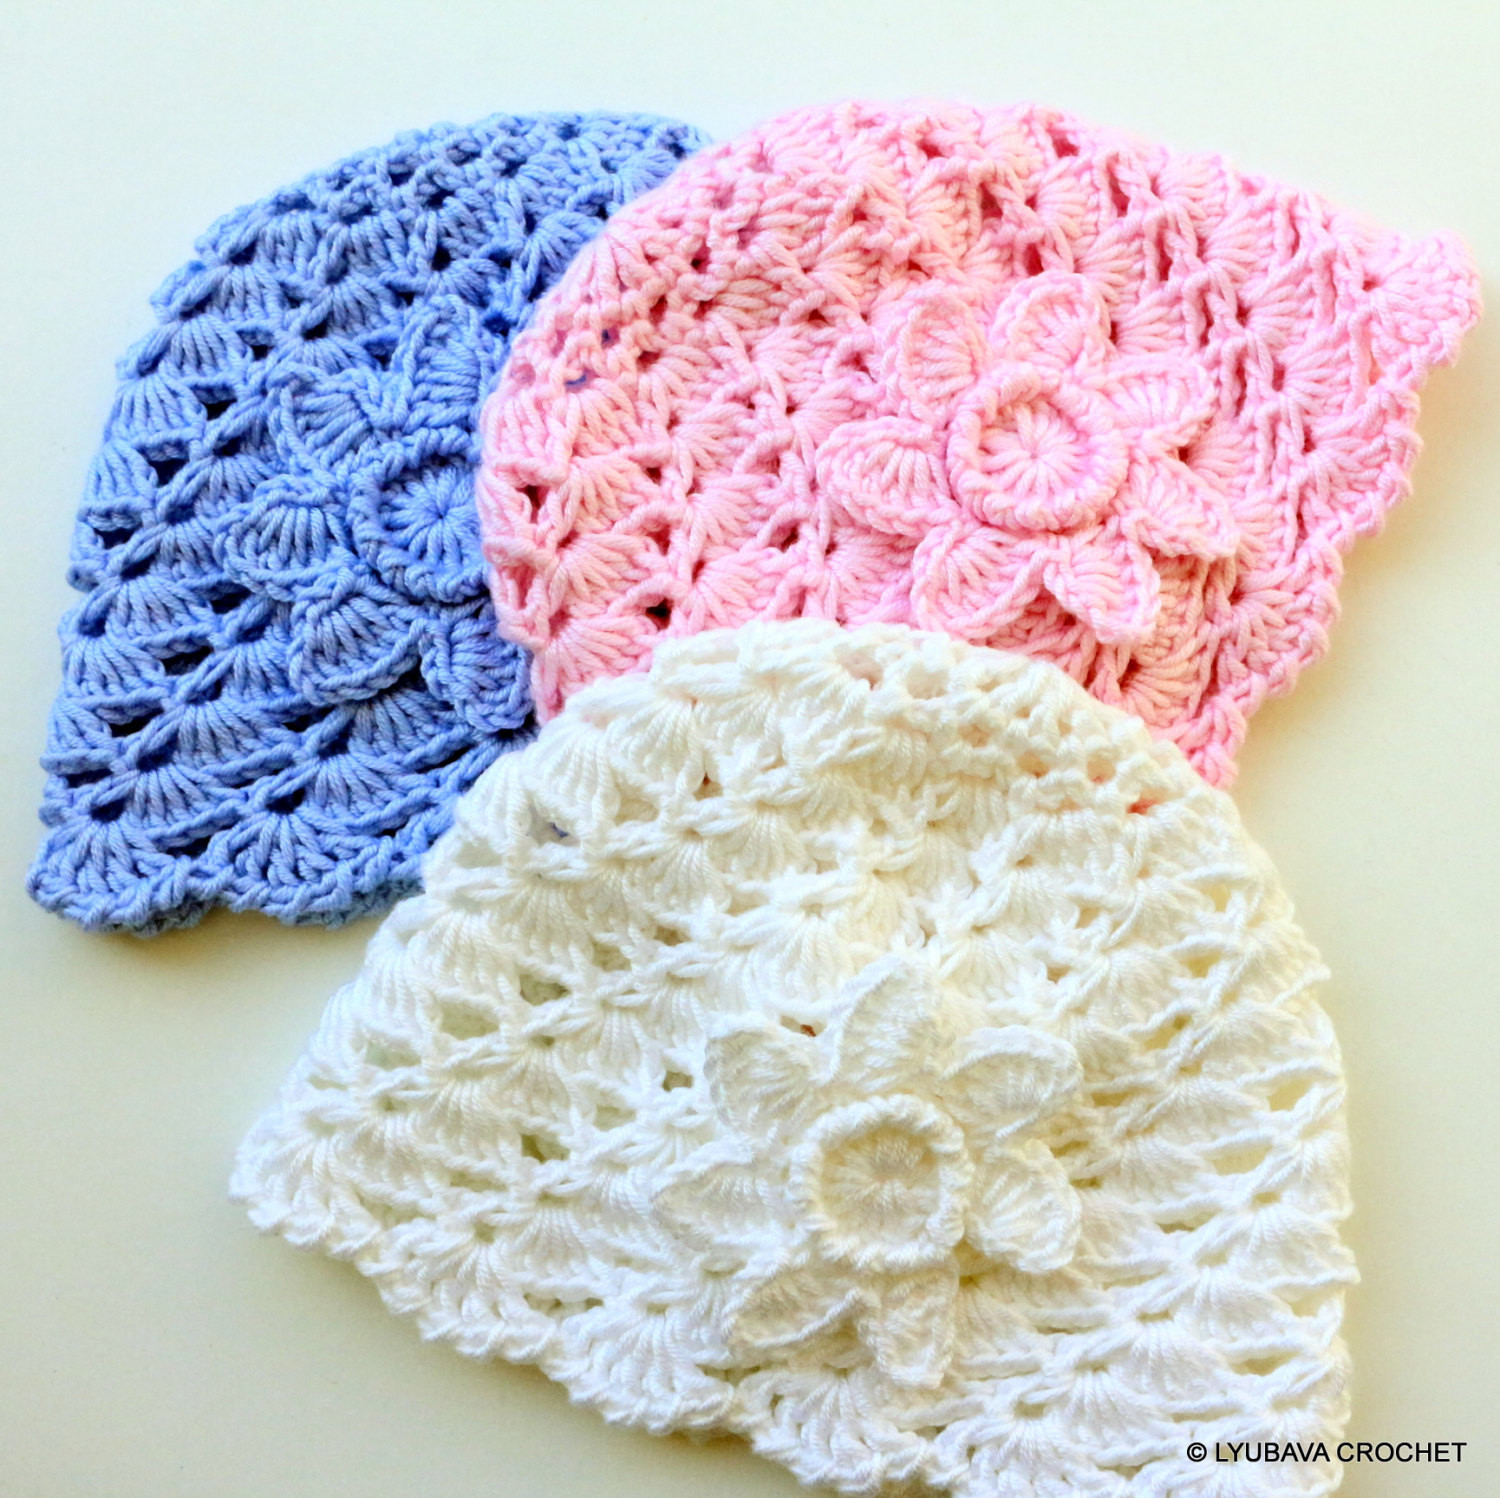 Best Of Crochet Pattern Baby Hat with Flower Baby Shower Diy Crochet toddler Hat Pattern Of Delightful 40 Ideas Crochet toddler Hat Pattern